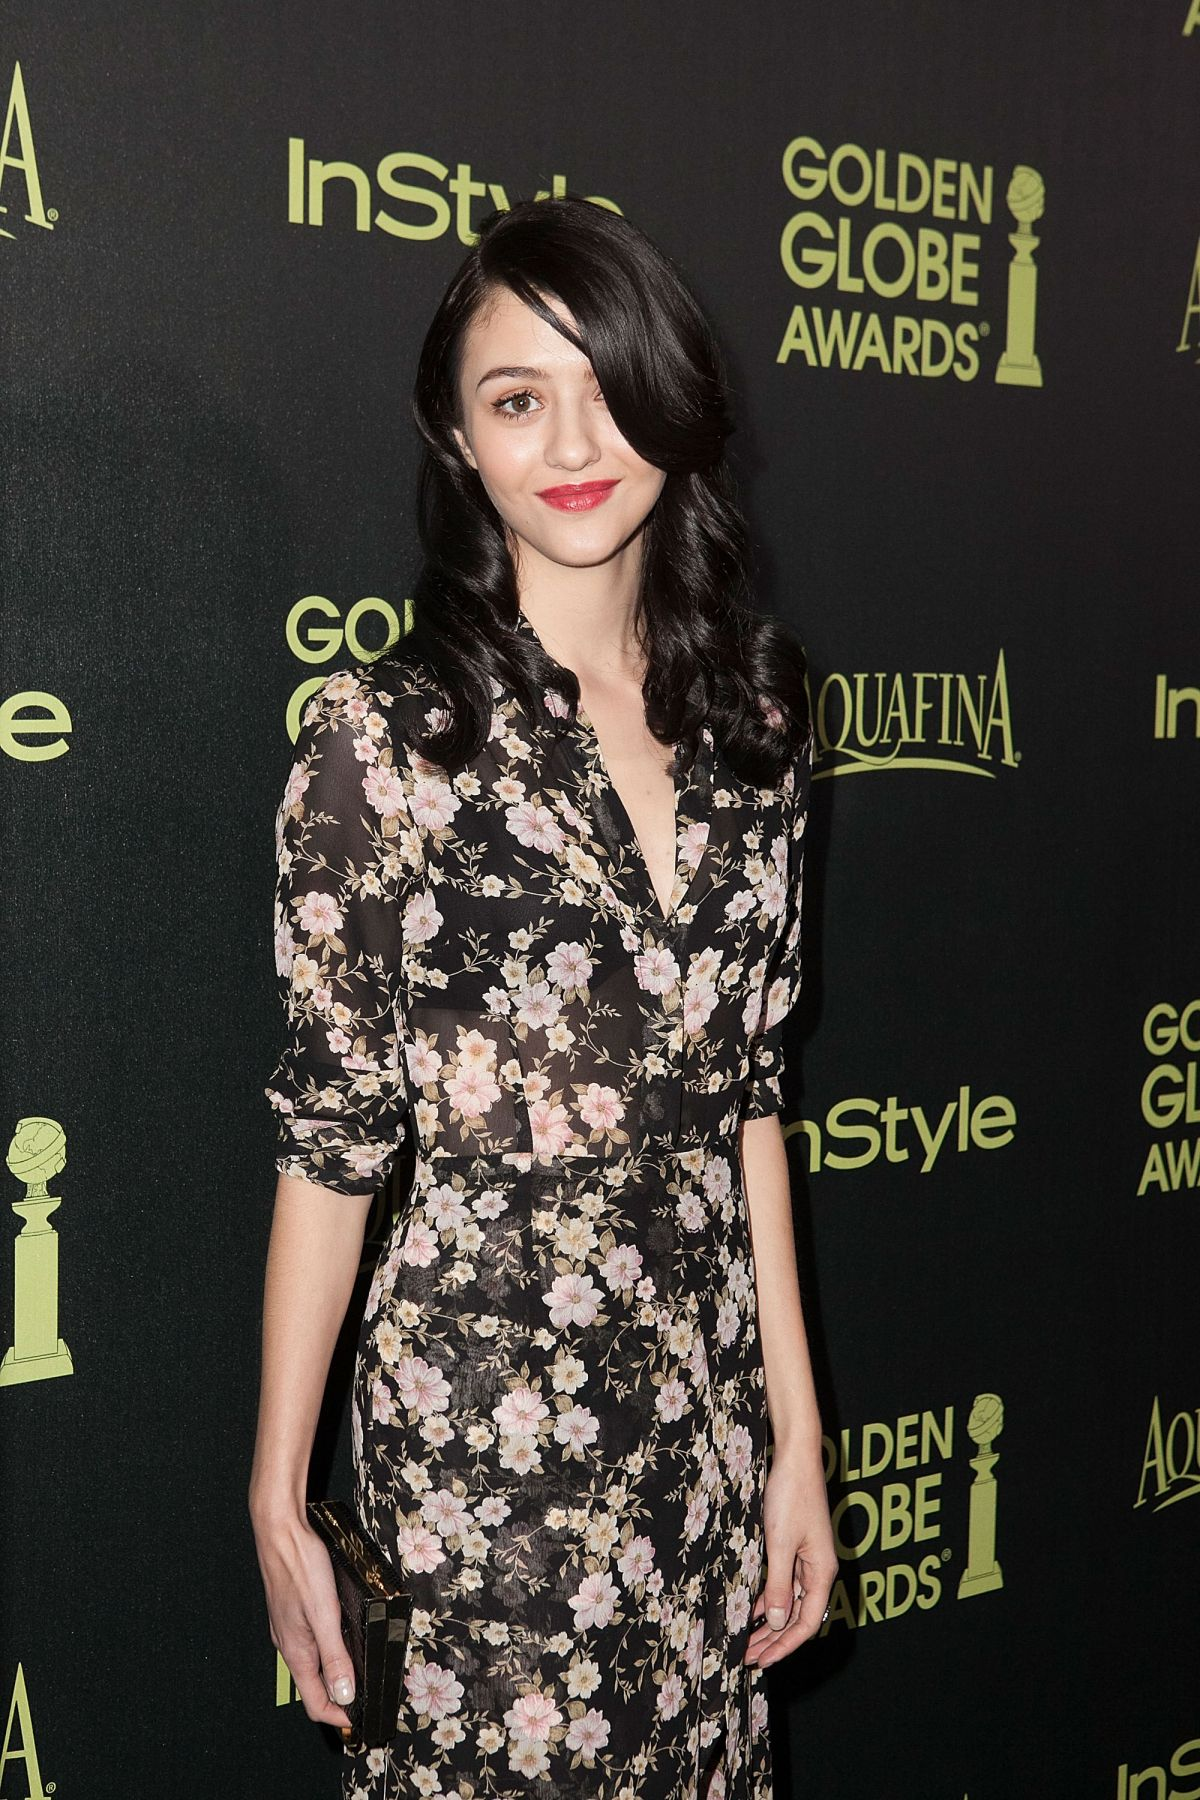 KATIE FINDLAY at Hfpa & Instyle Celebrate 2015 Golden Globe Award Season